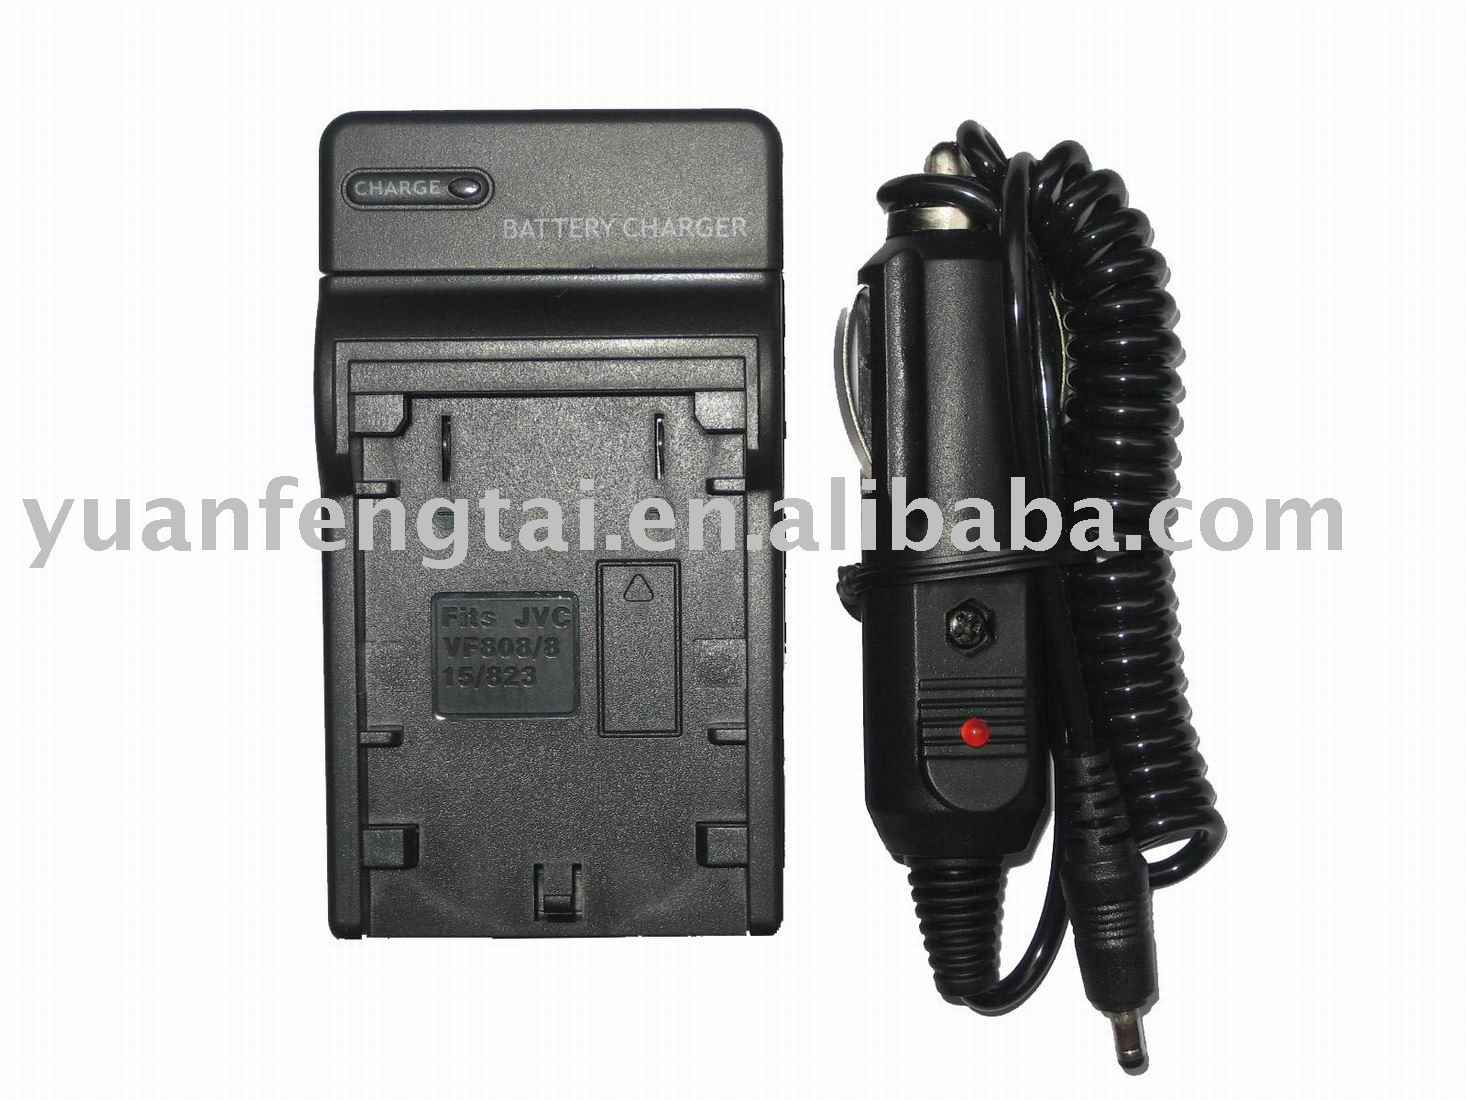 BN-VF815 Battery Charger Camcorder Battery Charger for JVC BN-VF815